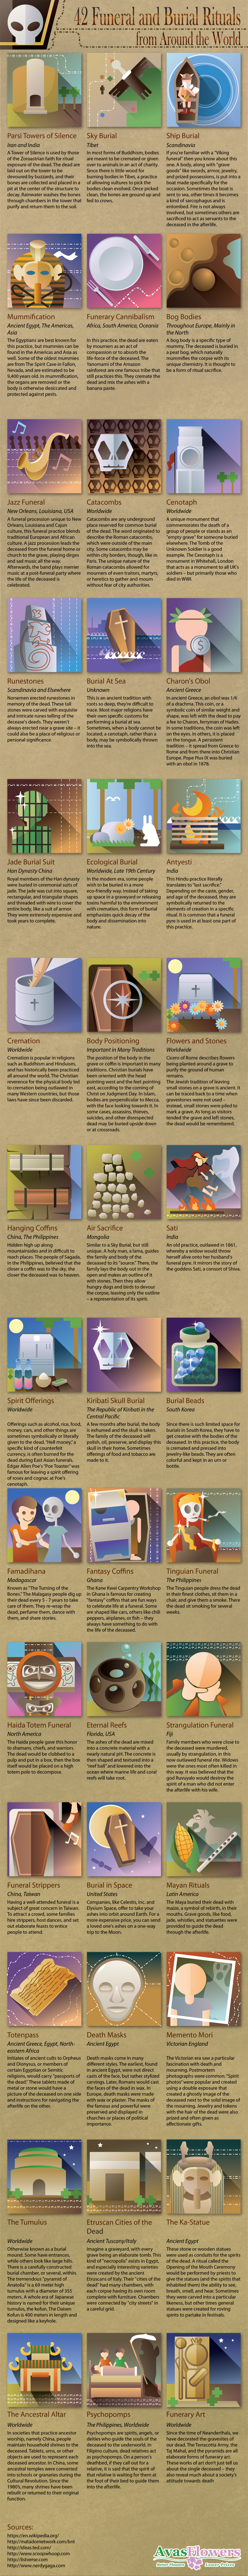 Rites and Rituals of Burial: 42 Examples from Around the World - Infographic